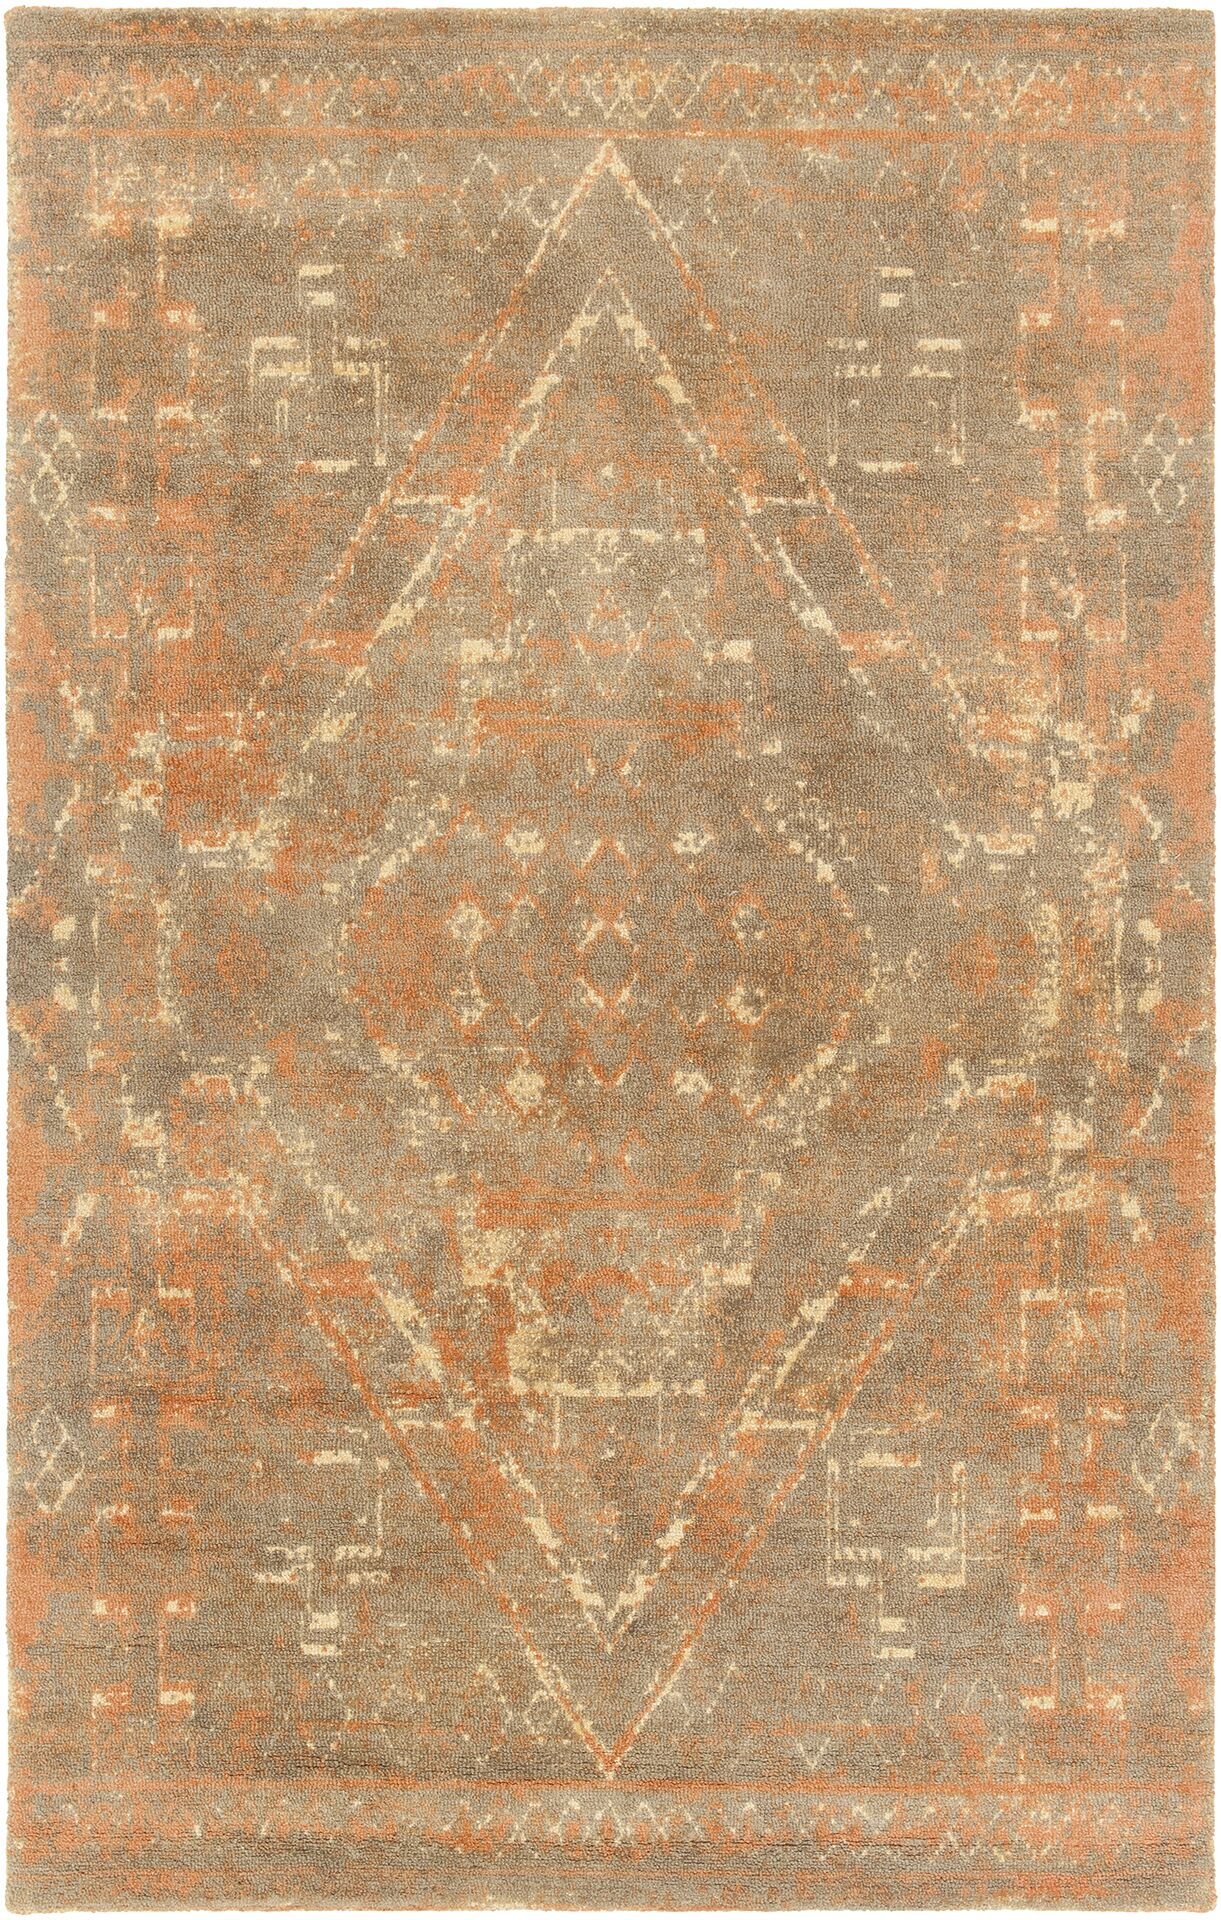 Cristal Hand-Tufted Rust/Brown Area Rug Rug Size: 5' x 7'6